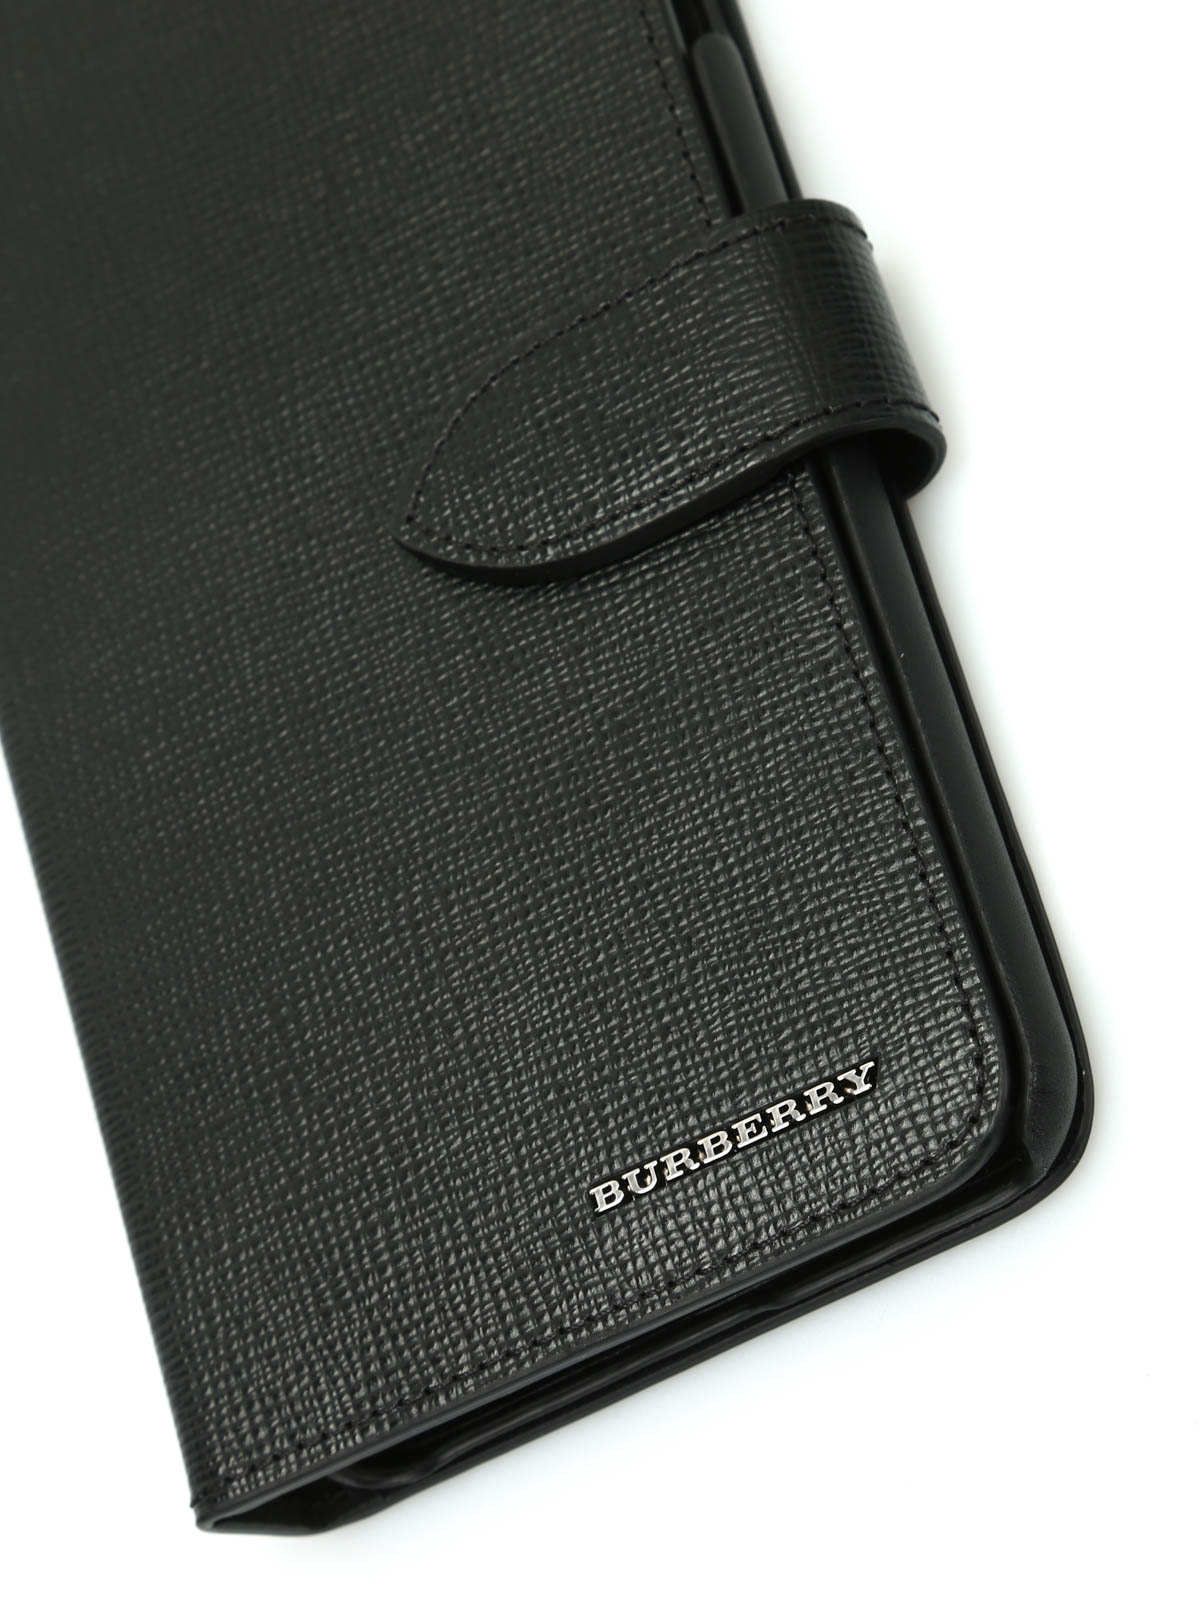 Burberry Leather Iphone 6 Case